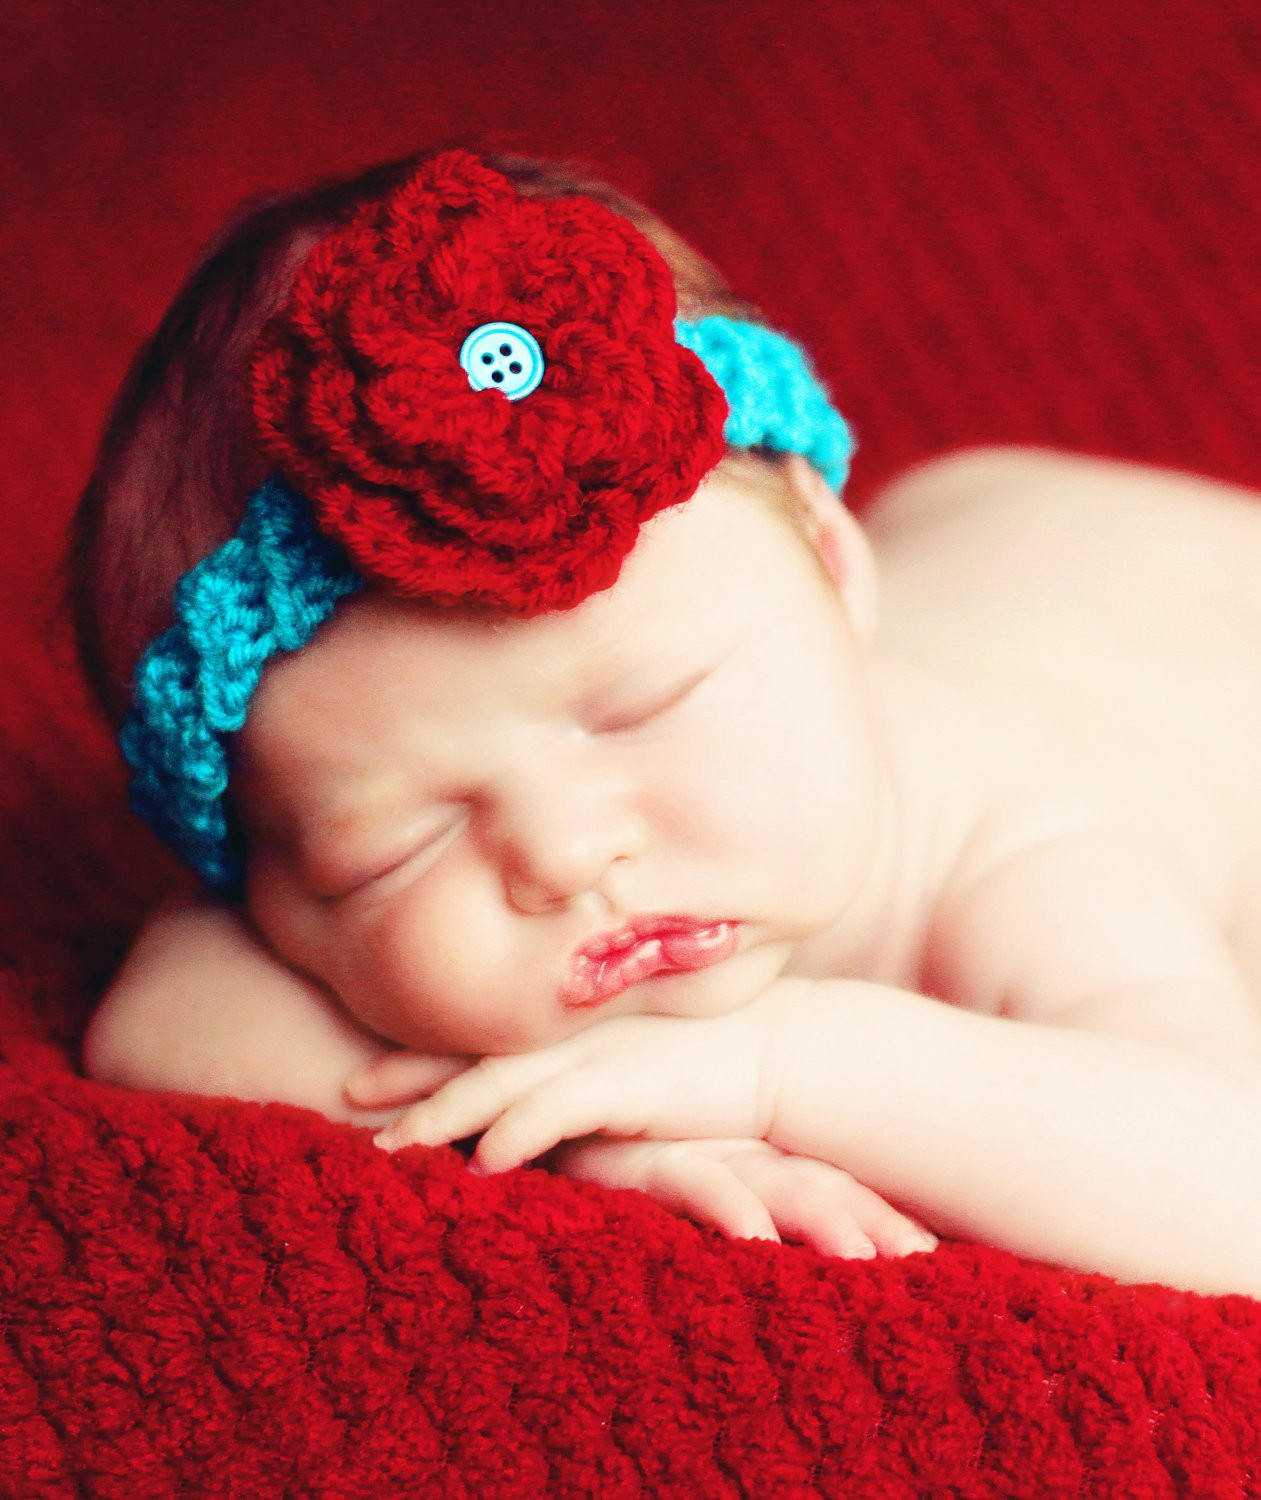 Luxury Crochet Pattern Baby Headband with Flower In 5 Sizes 0 10 Babies Crochet Headbands Of Awesome 49 Photos Babies Crochet Headbands